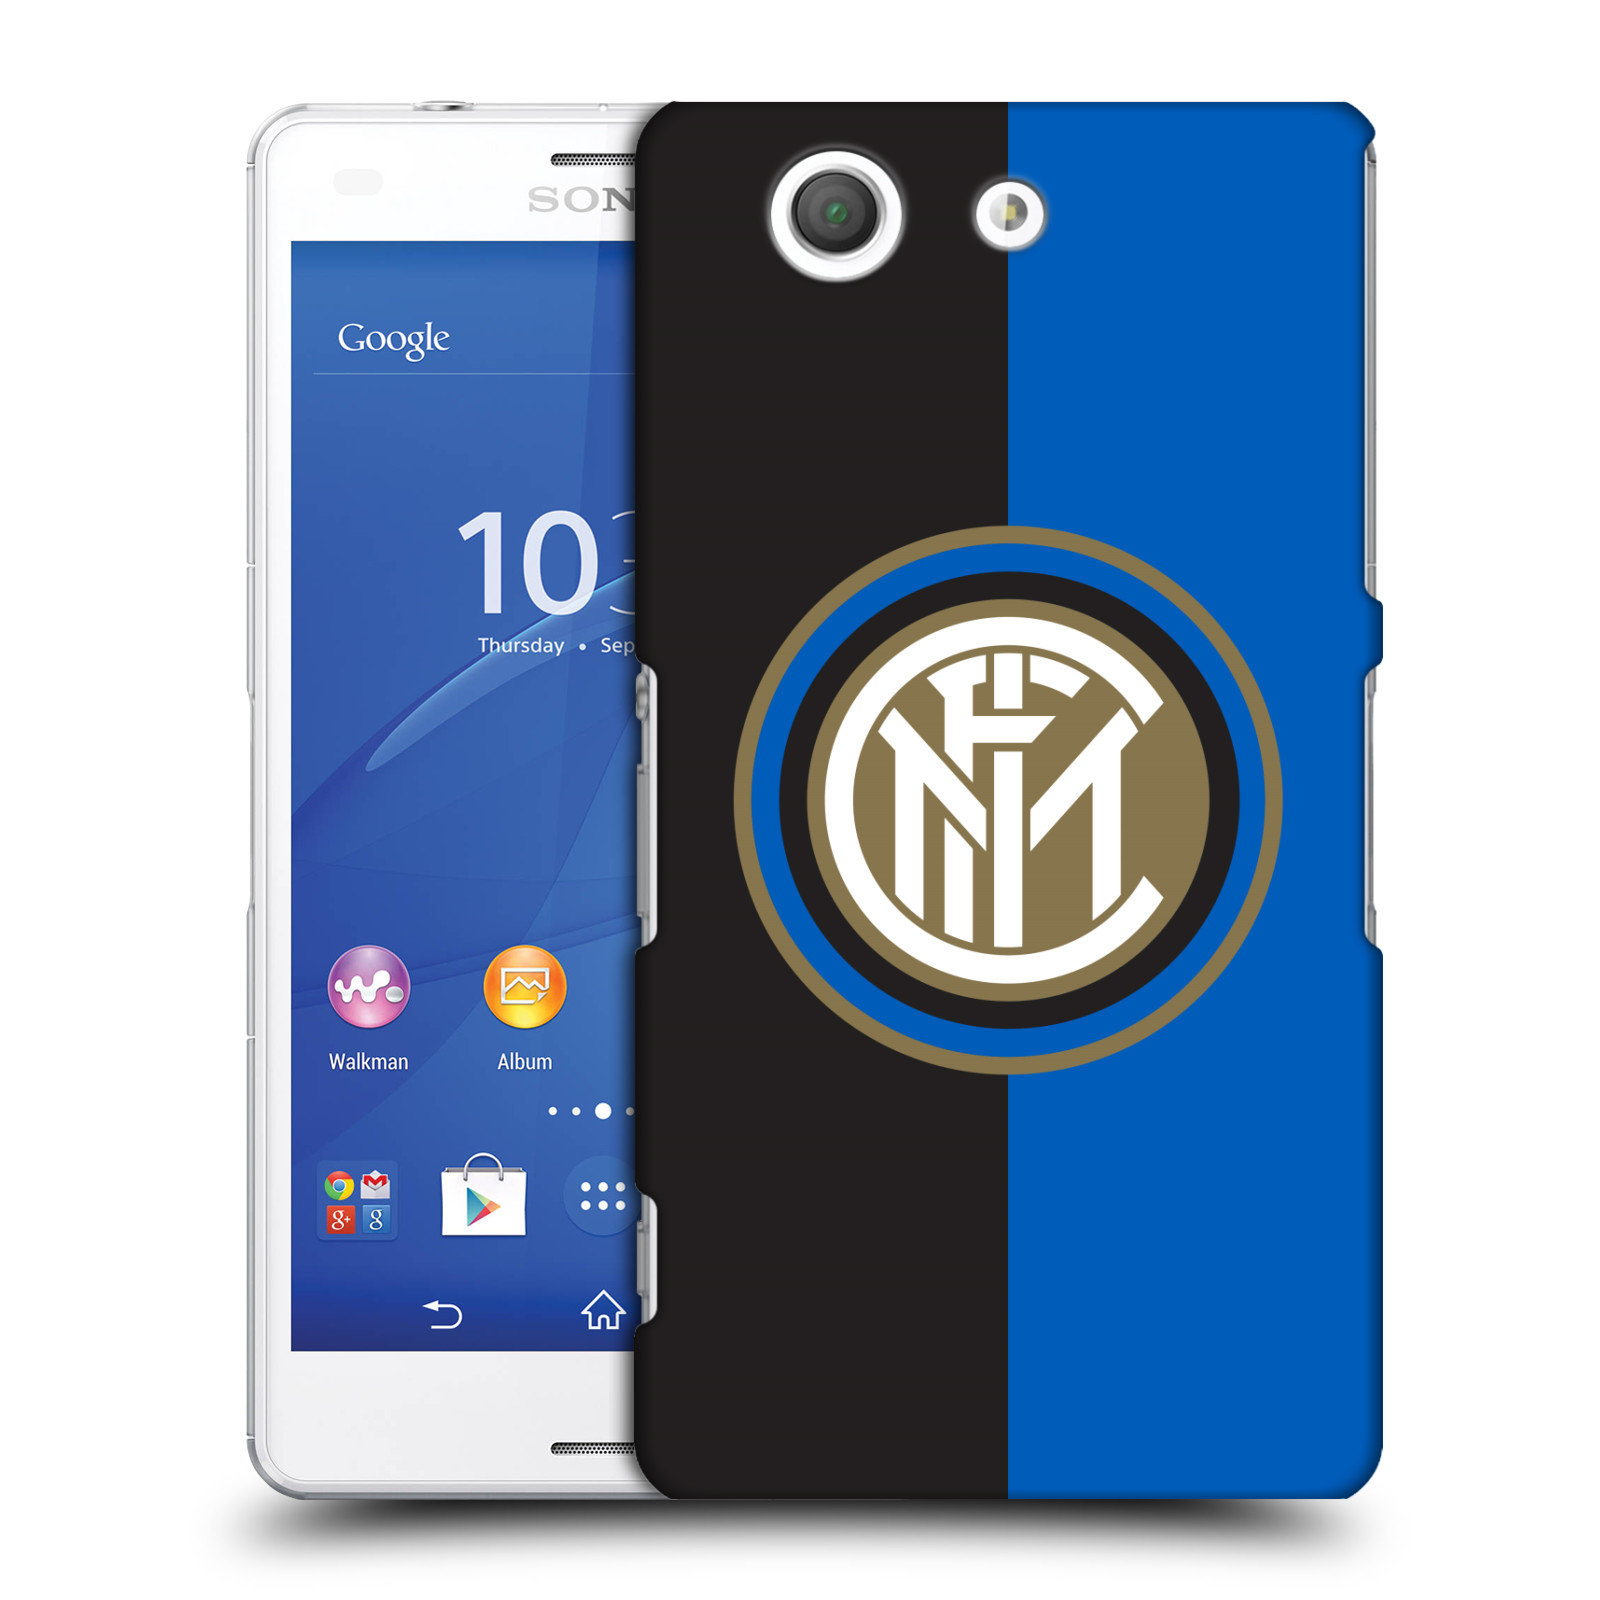 Plastové pouzdro na mobil Sony Xperia Z3 Compact D5803 - Head Case - Inter Milan - Black and blue